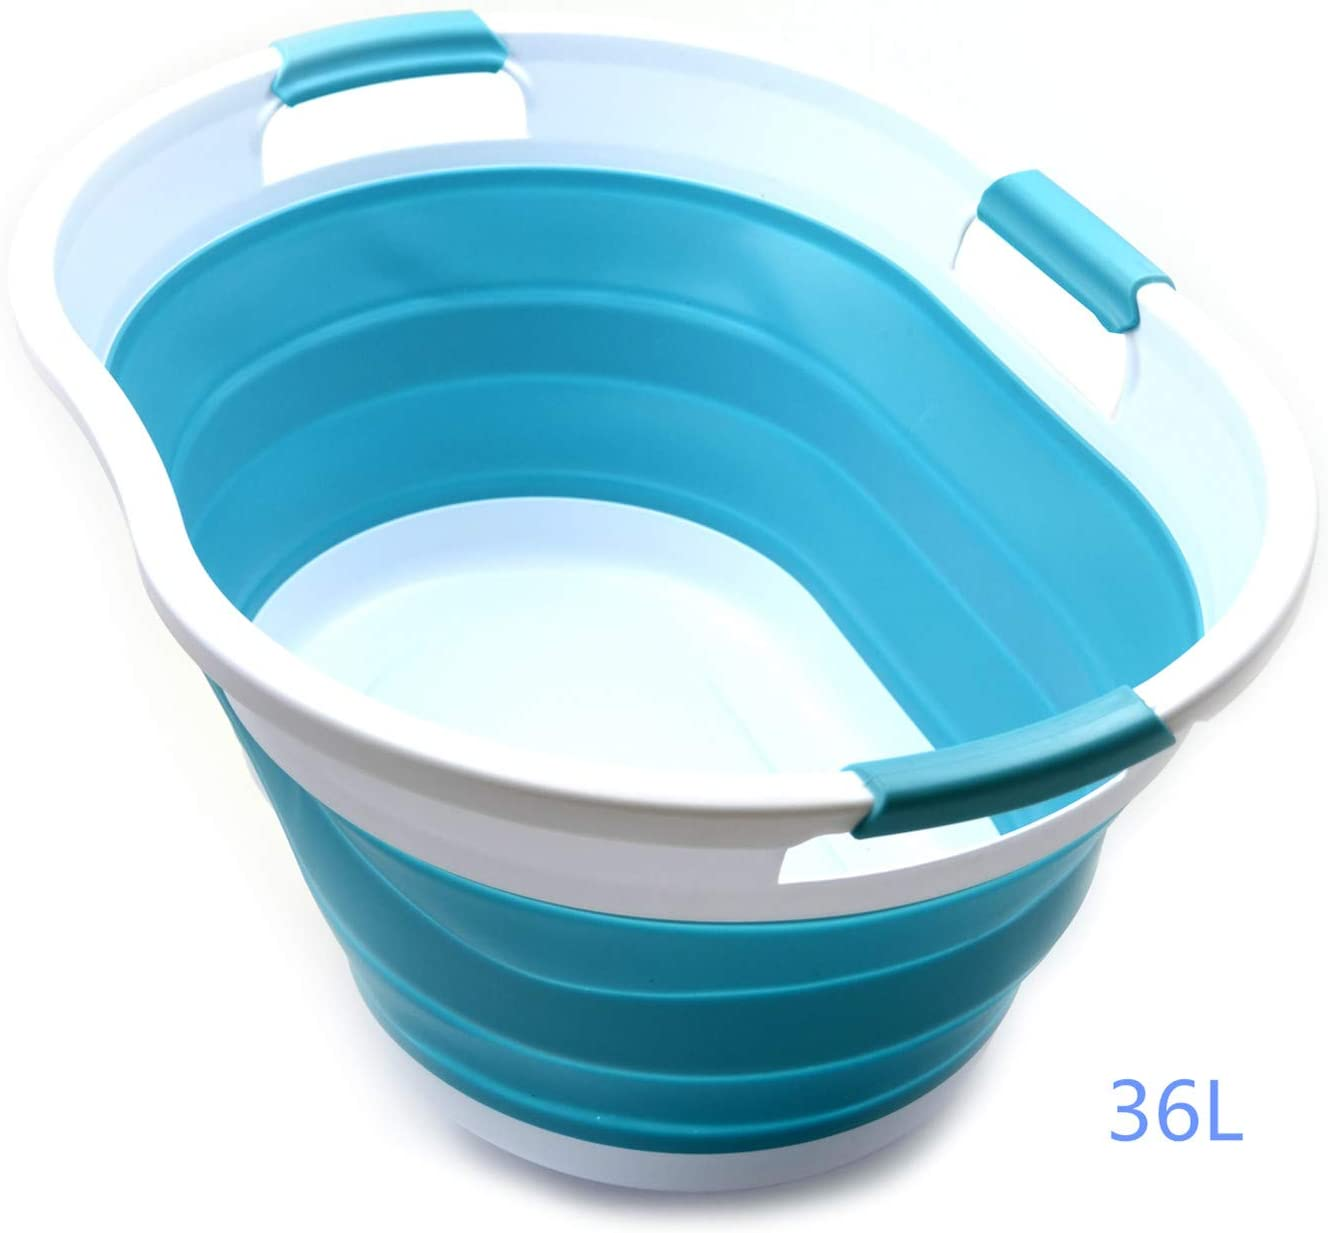 SAMMART 36L (9.5 Gallon) Collapsible 3 Handled Plastic Laundry Basket-Foldable Pop Up Storage Container-Portable Washing Tub-Space Saving Basket/Water Capacity 27L/7.1 Gallon (1, Bright Blue)